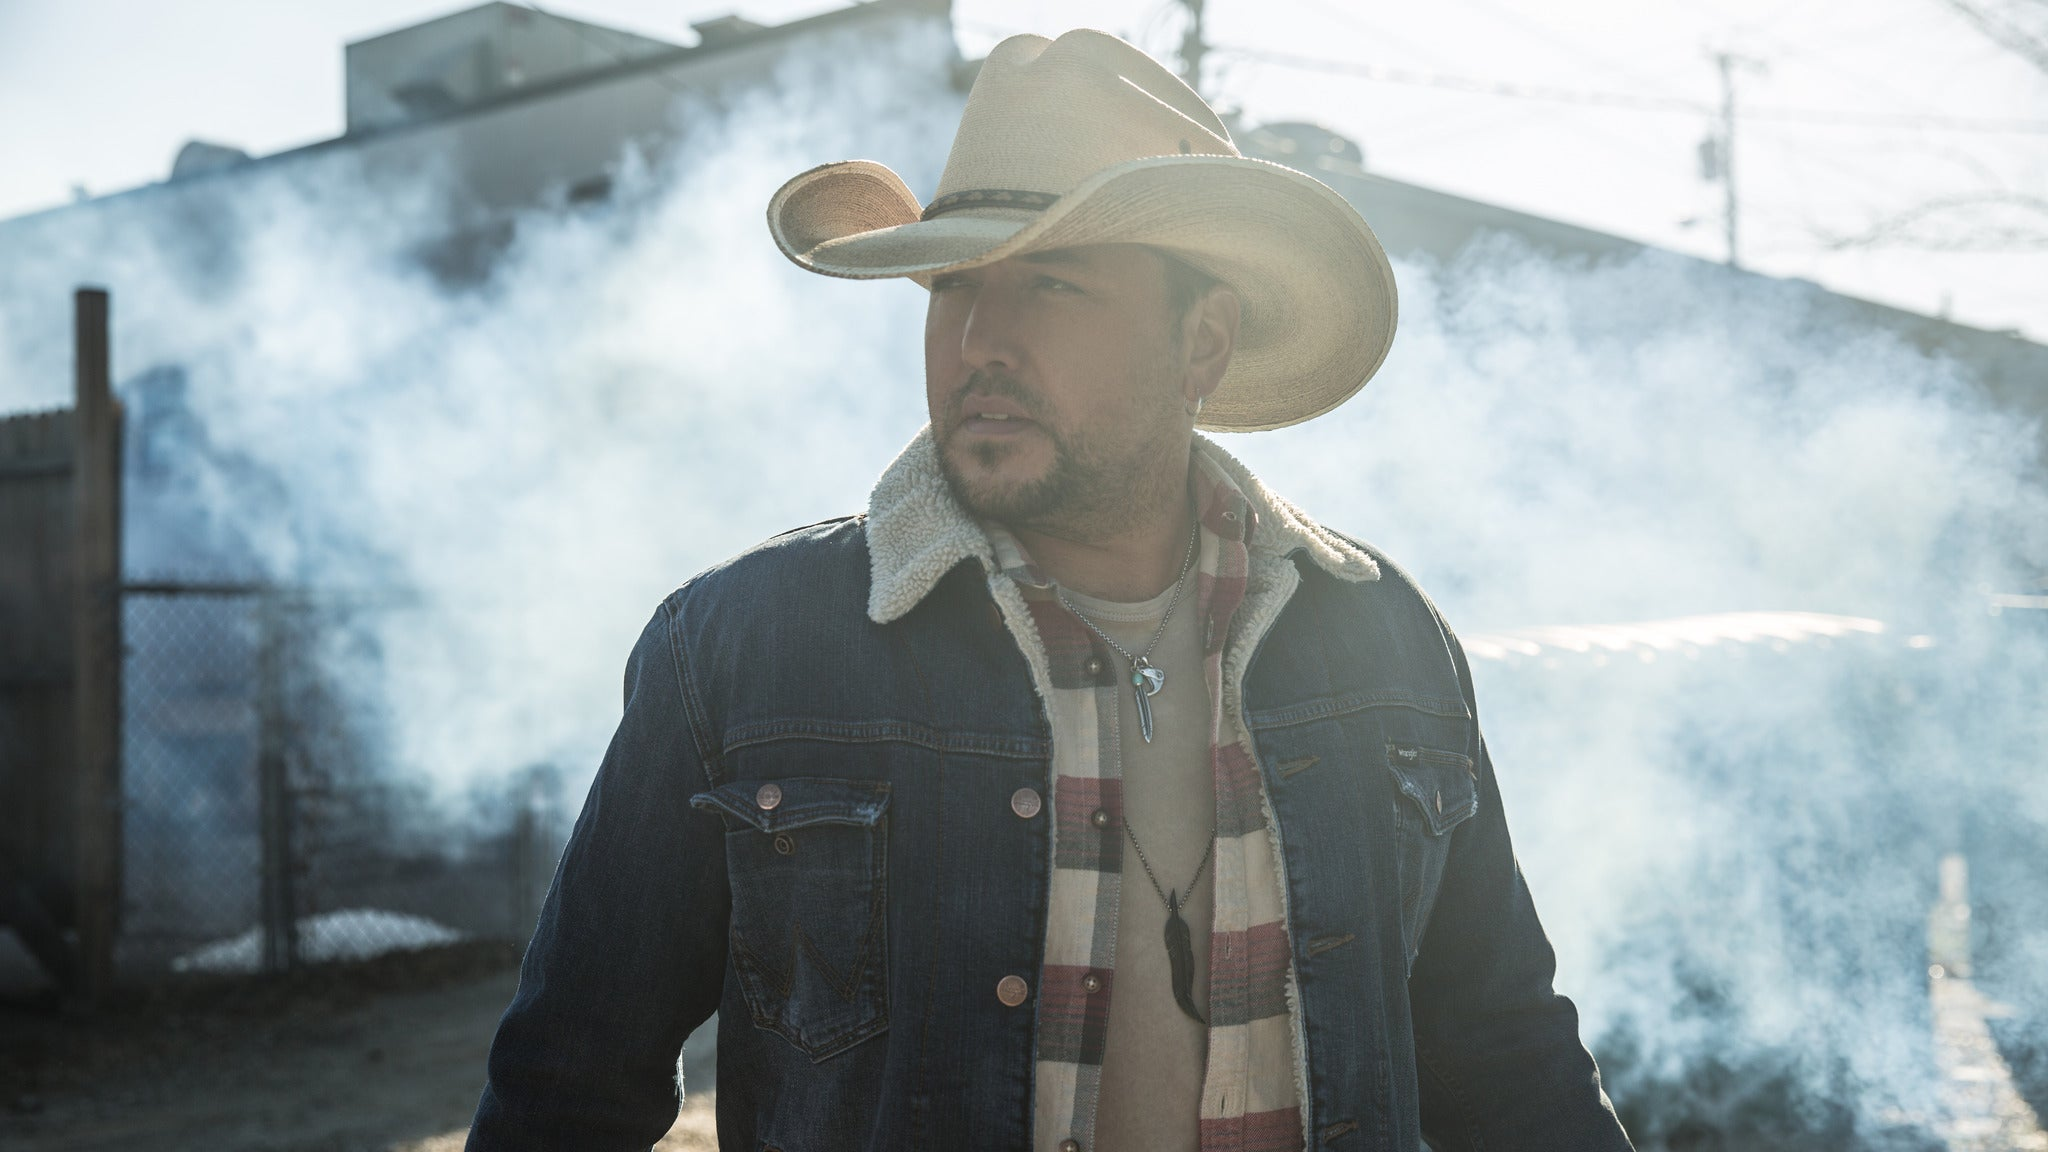 Jason Aldean: Ride All Night Tour 2019 at KeyBank Pavilion